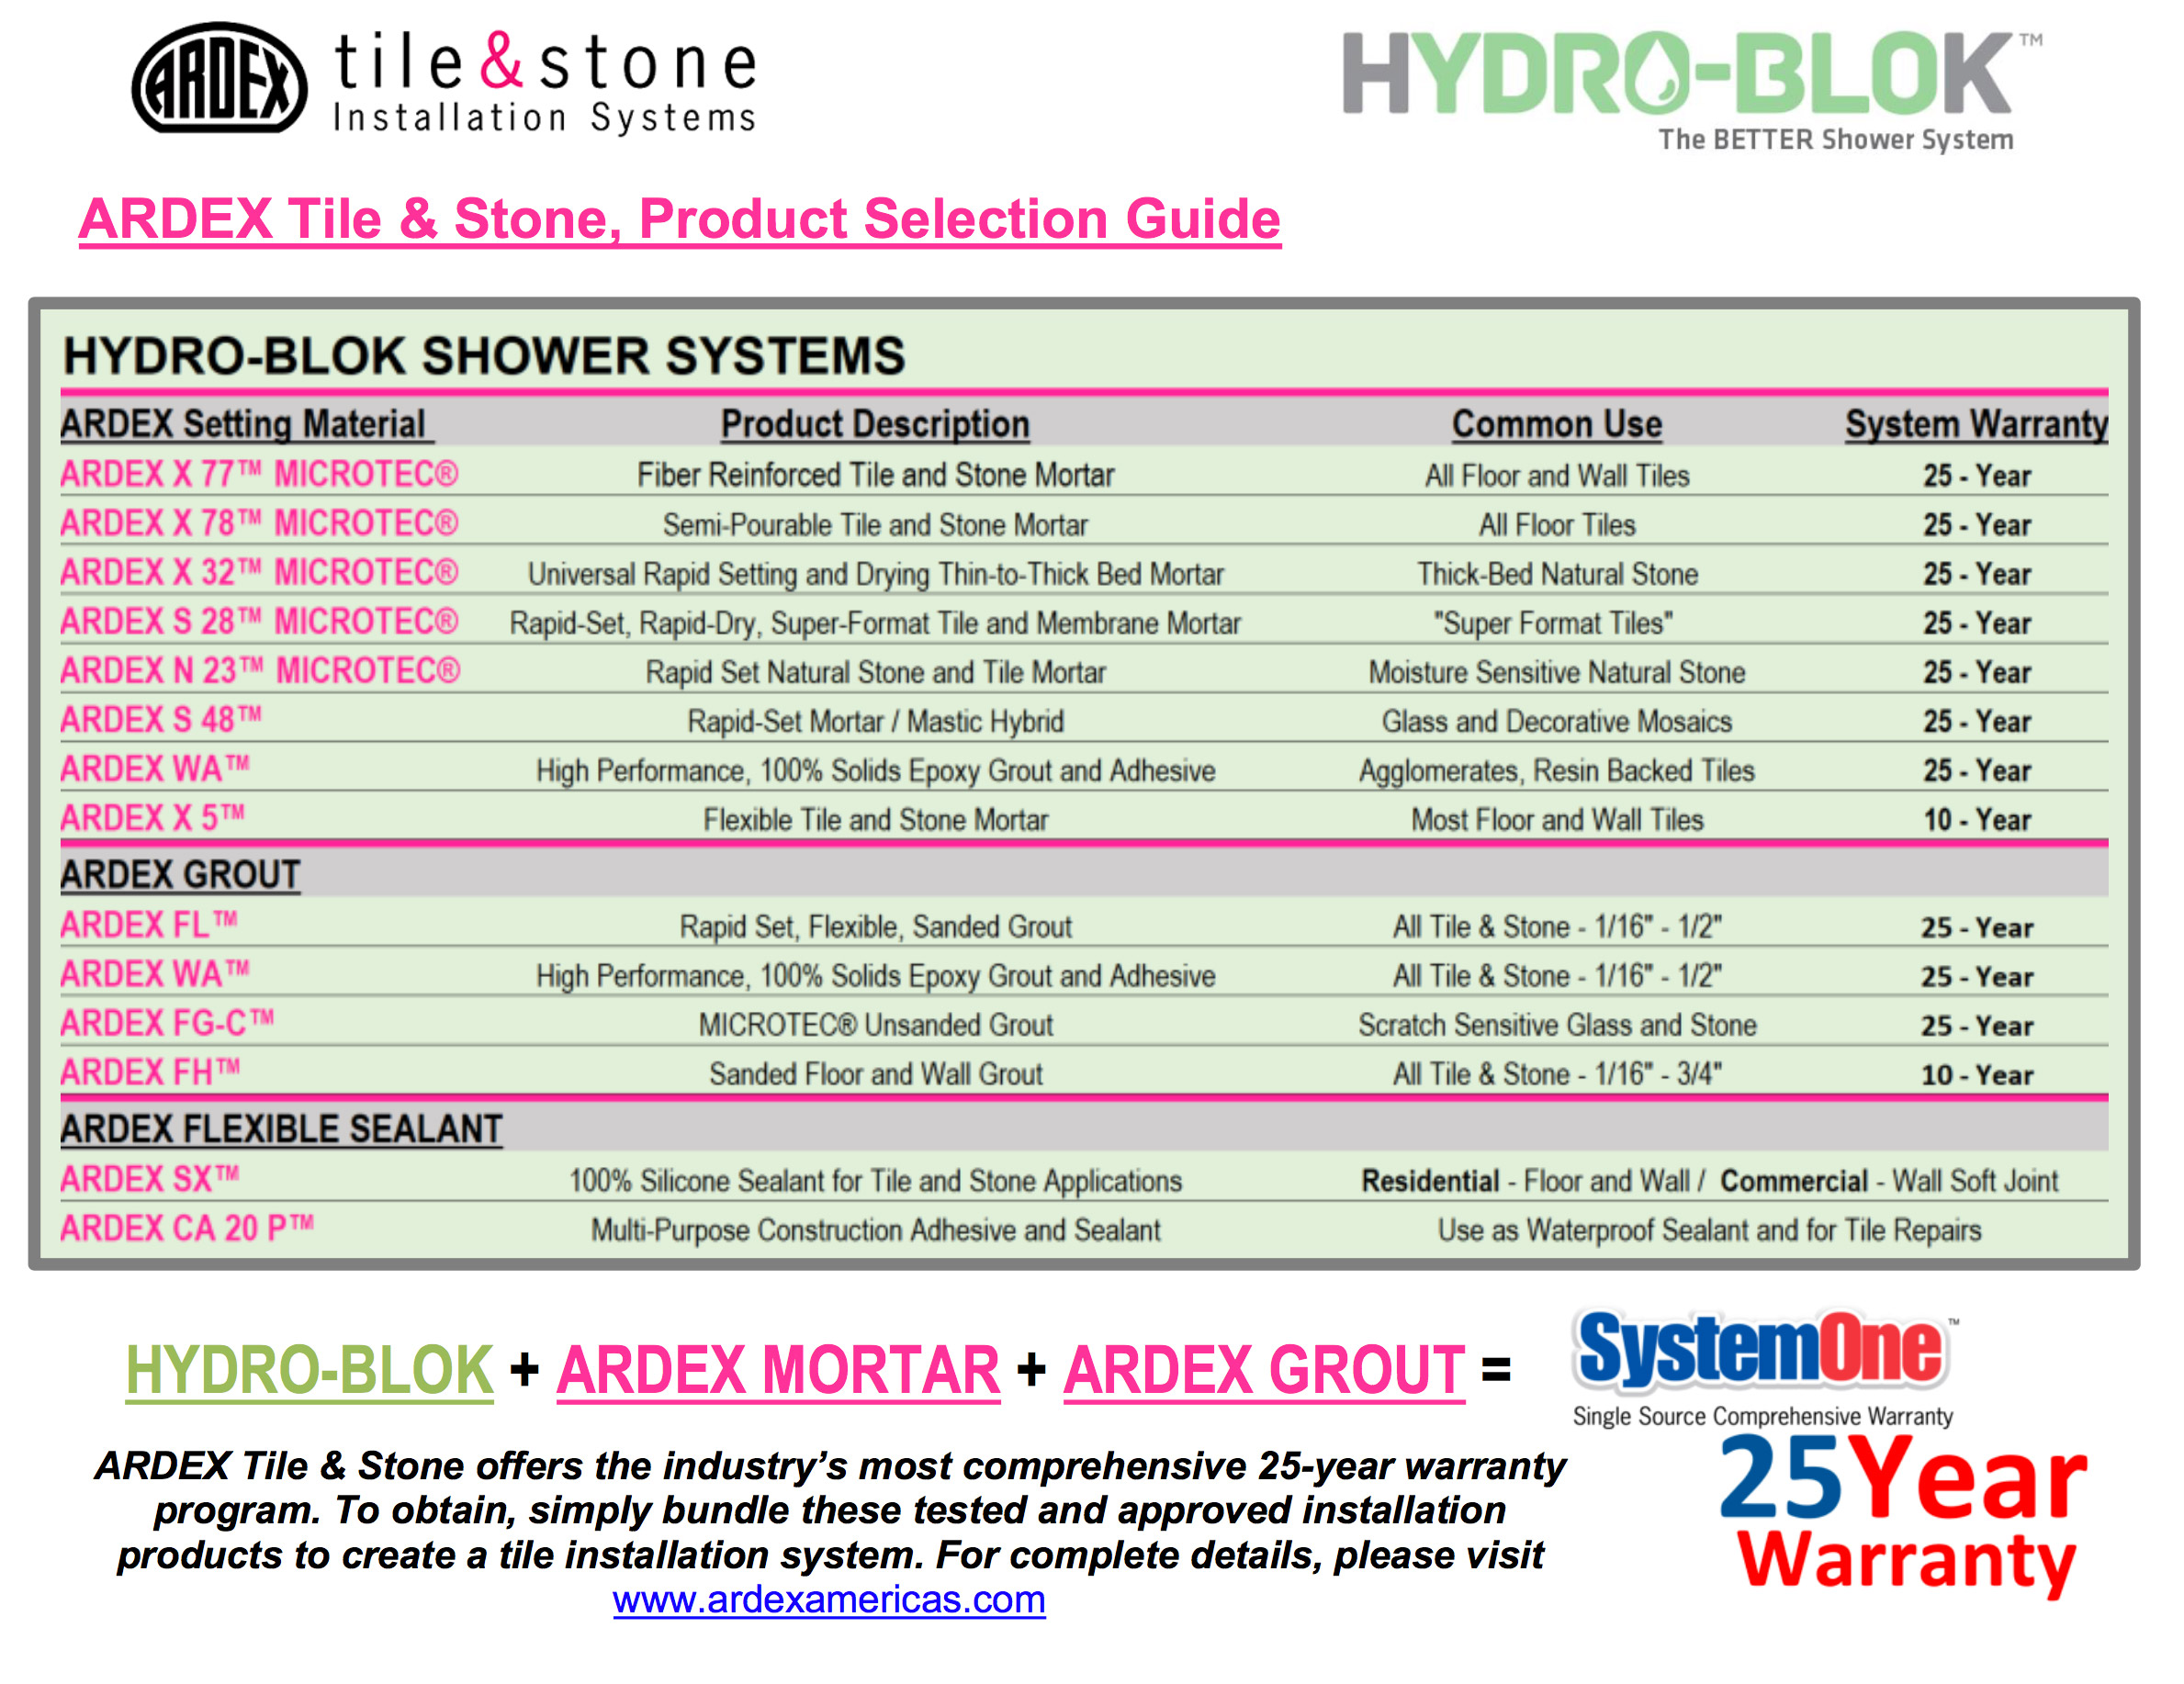 HYDRO-BLOK with ARDEX Tile & Stone Products | HYDRO-BLOK